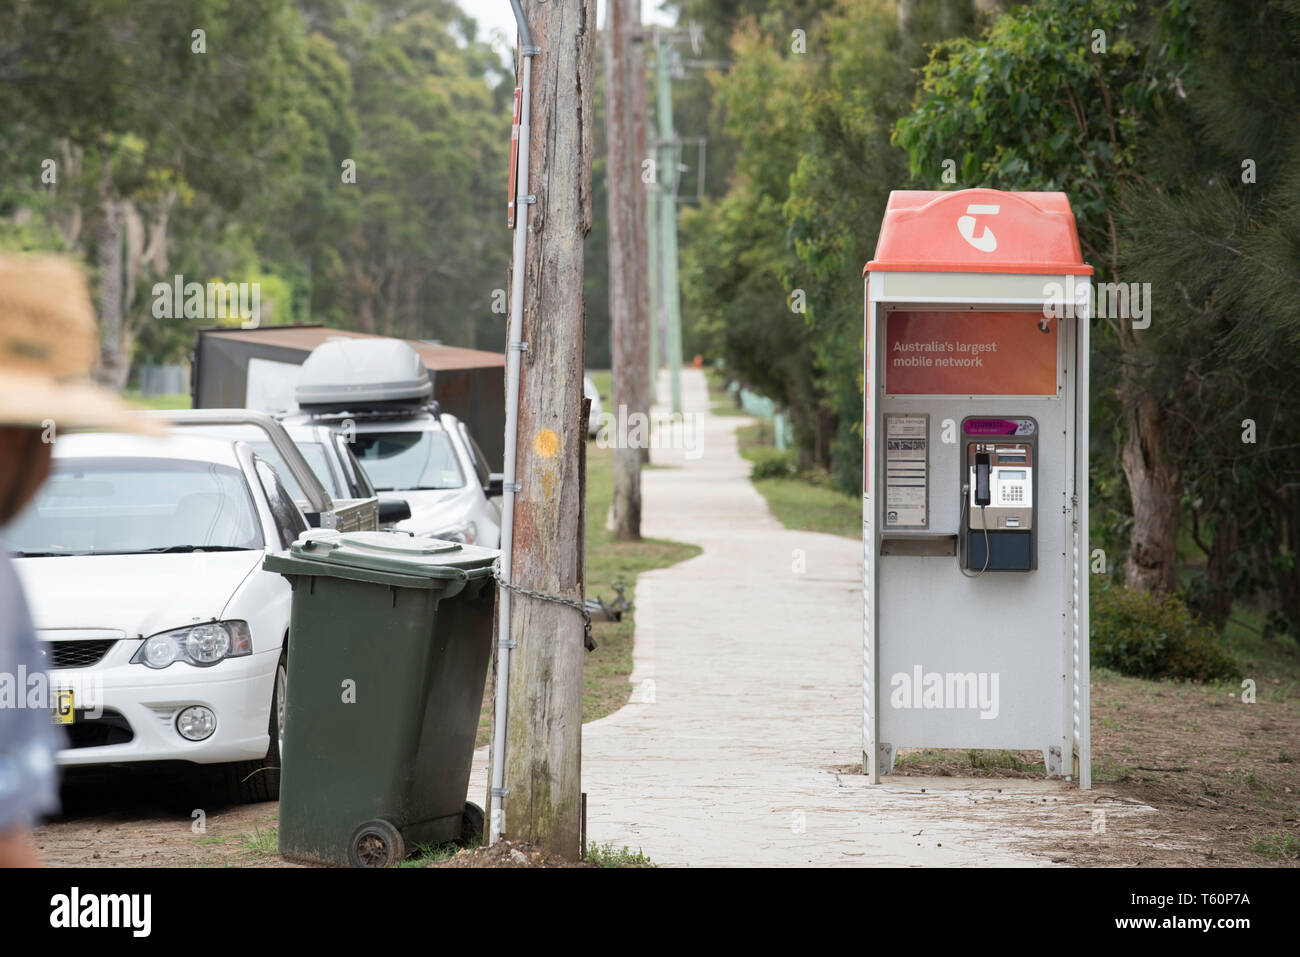 Kioloa, New South Wales, Australia: A traditional Telstra phone booth on a footpath in a rural village now almost redundant due to mobile, cell phones - Stock Image